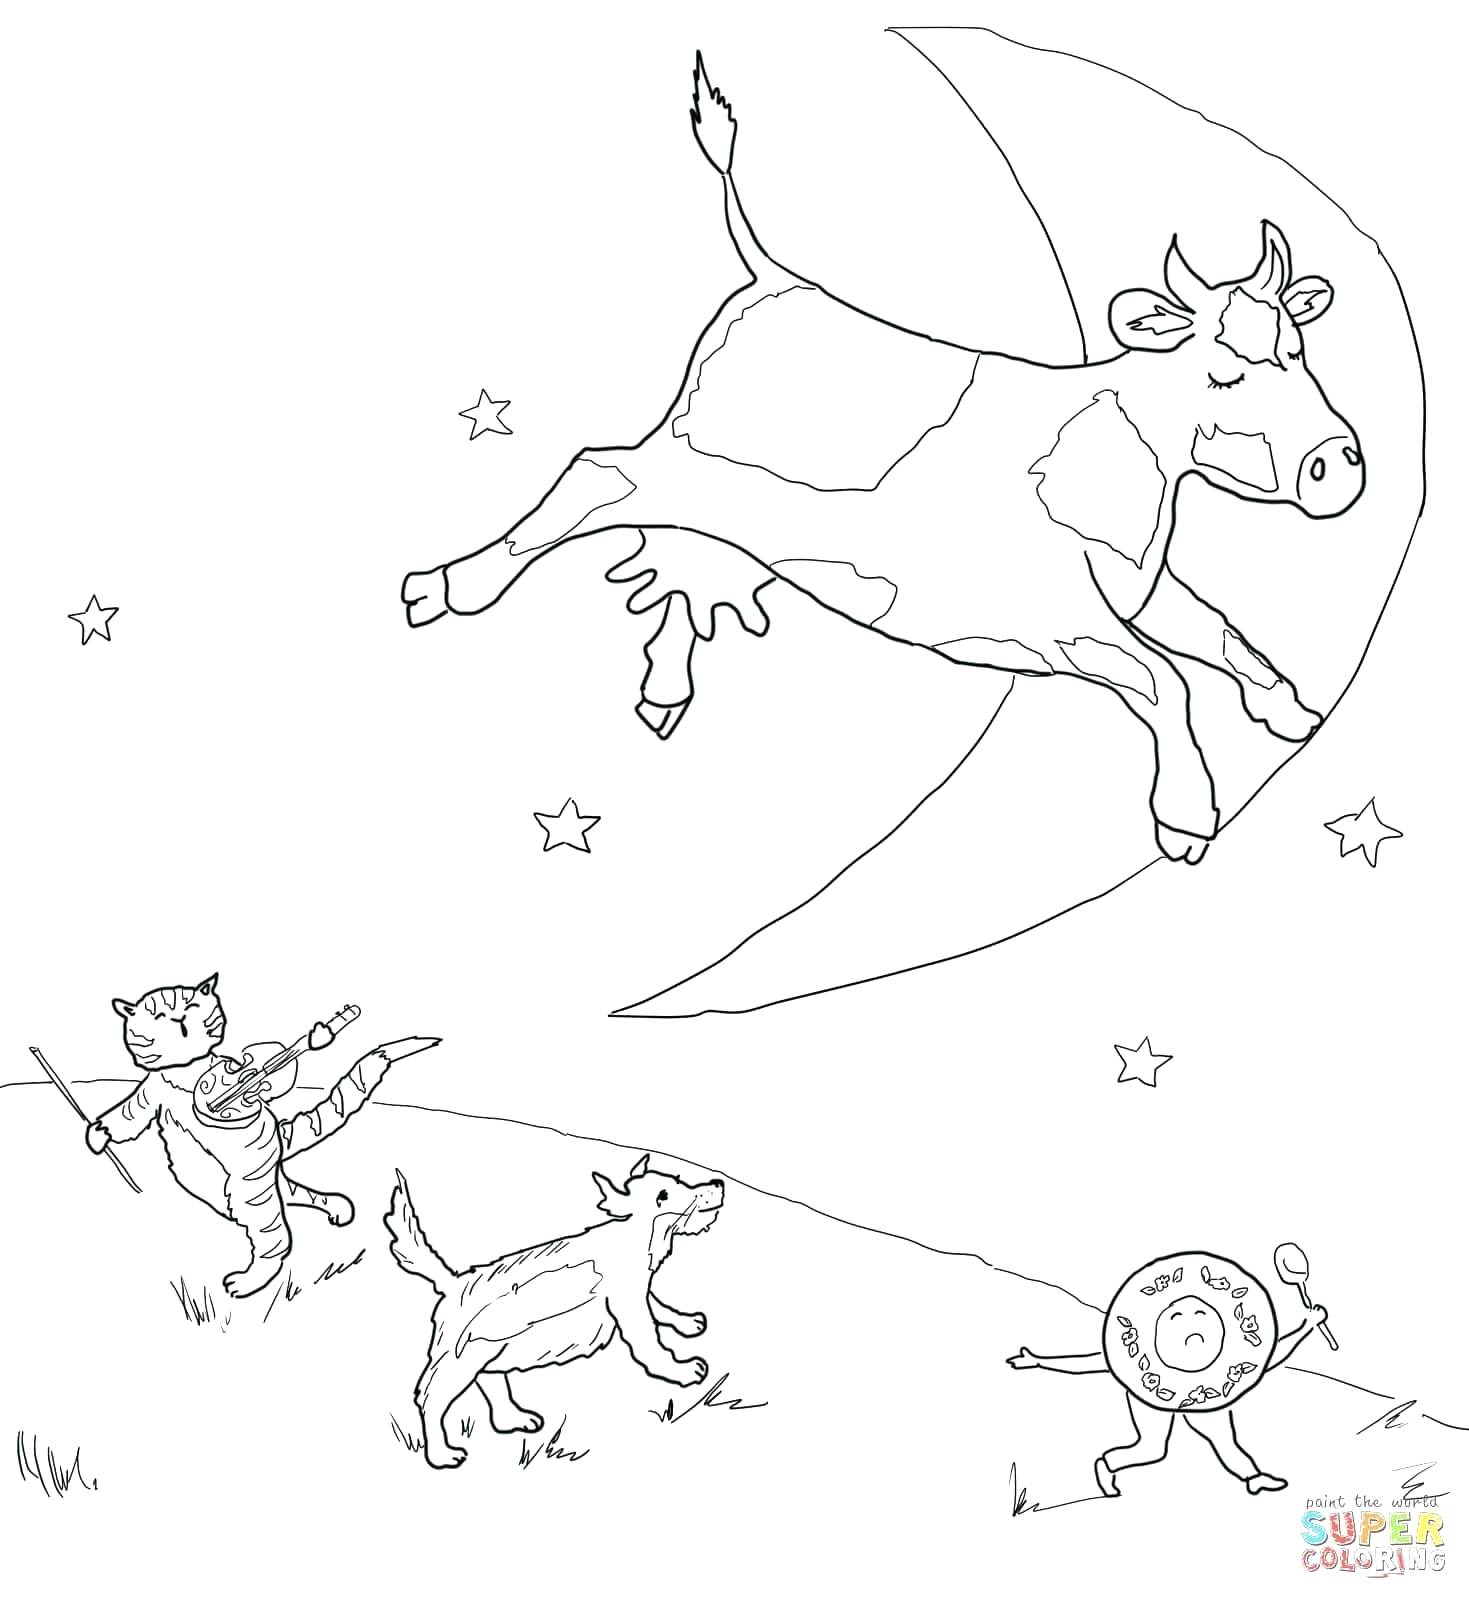 Nursery Rhyme Coloring Pages Hey Diddle Nursery Rhyme Coloring Pages - Free Printable Nursery Rhymes